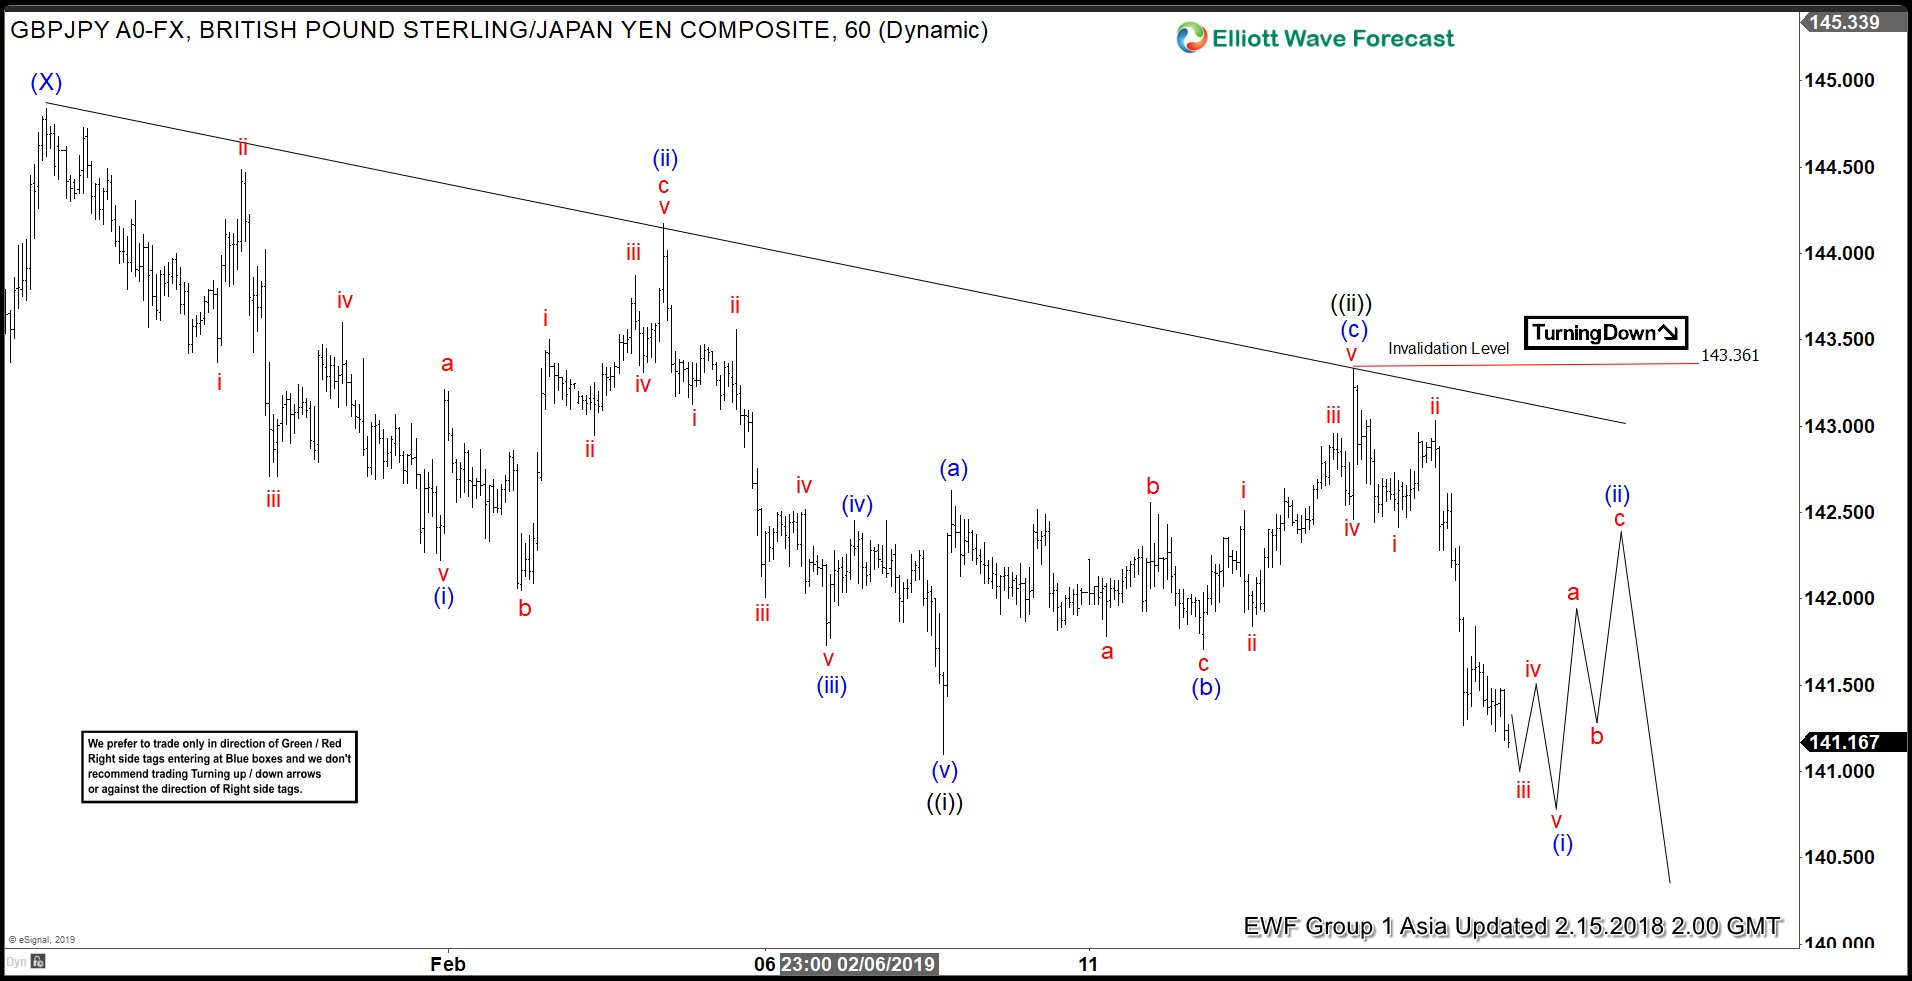 Elliott Wave View favors more downside in GBPJPY